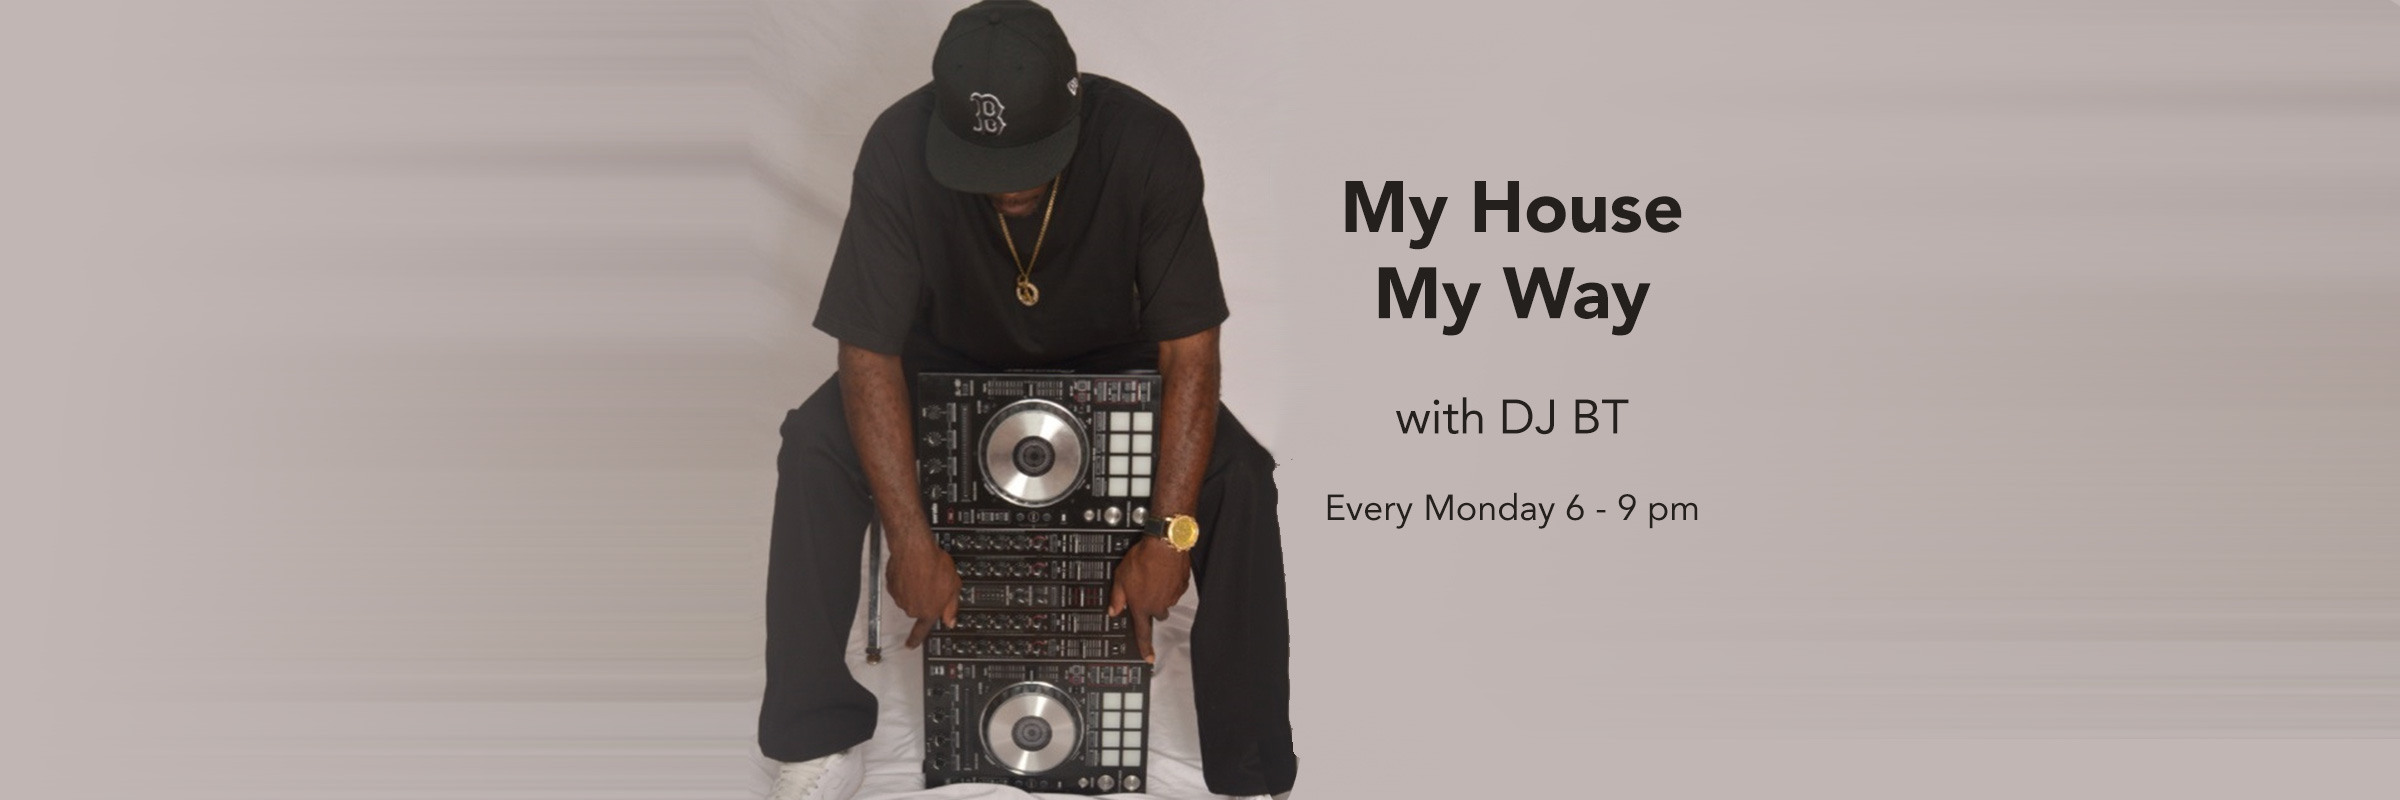 DT BT - My House, My Way - Every Monday 6-9pm